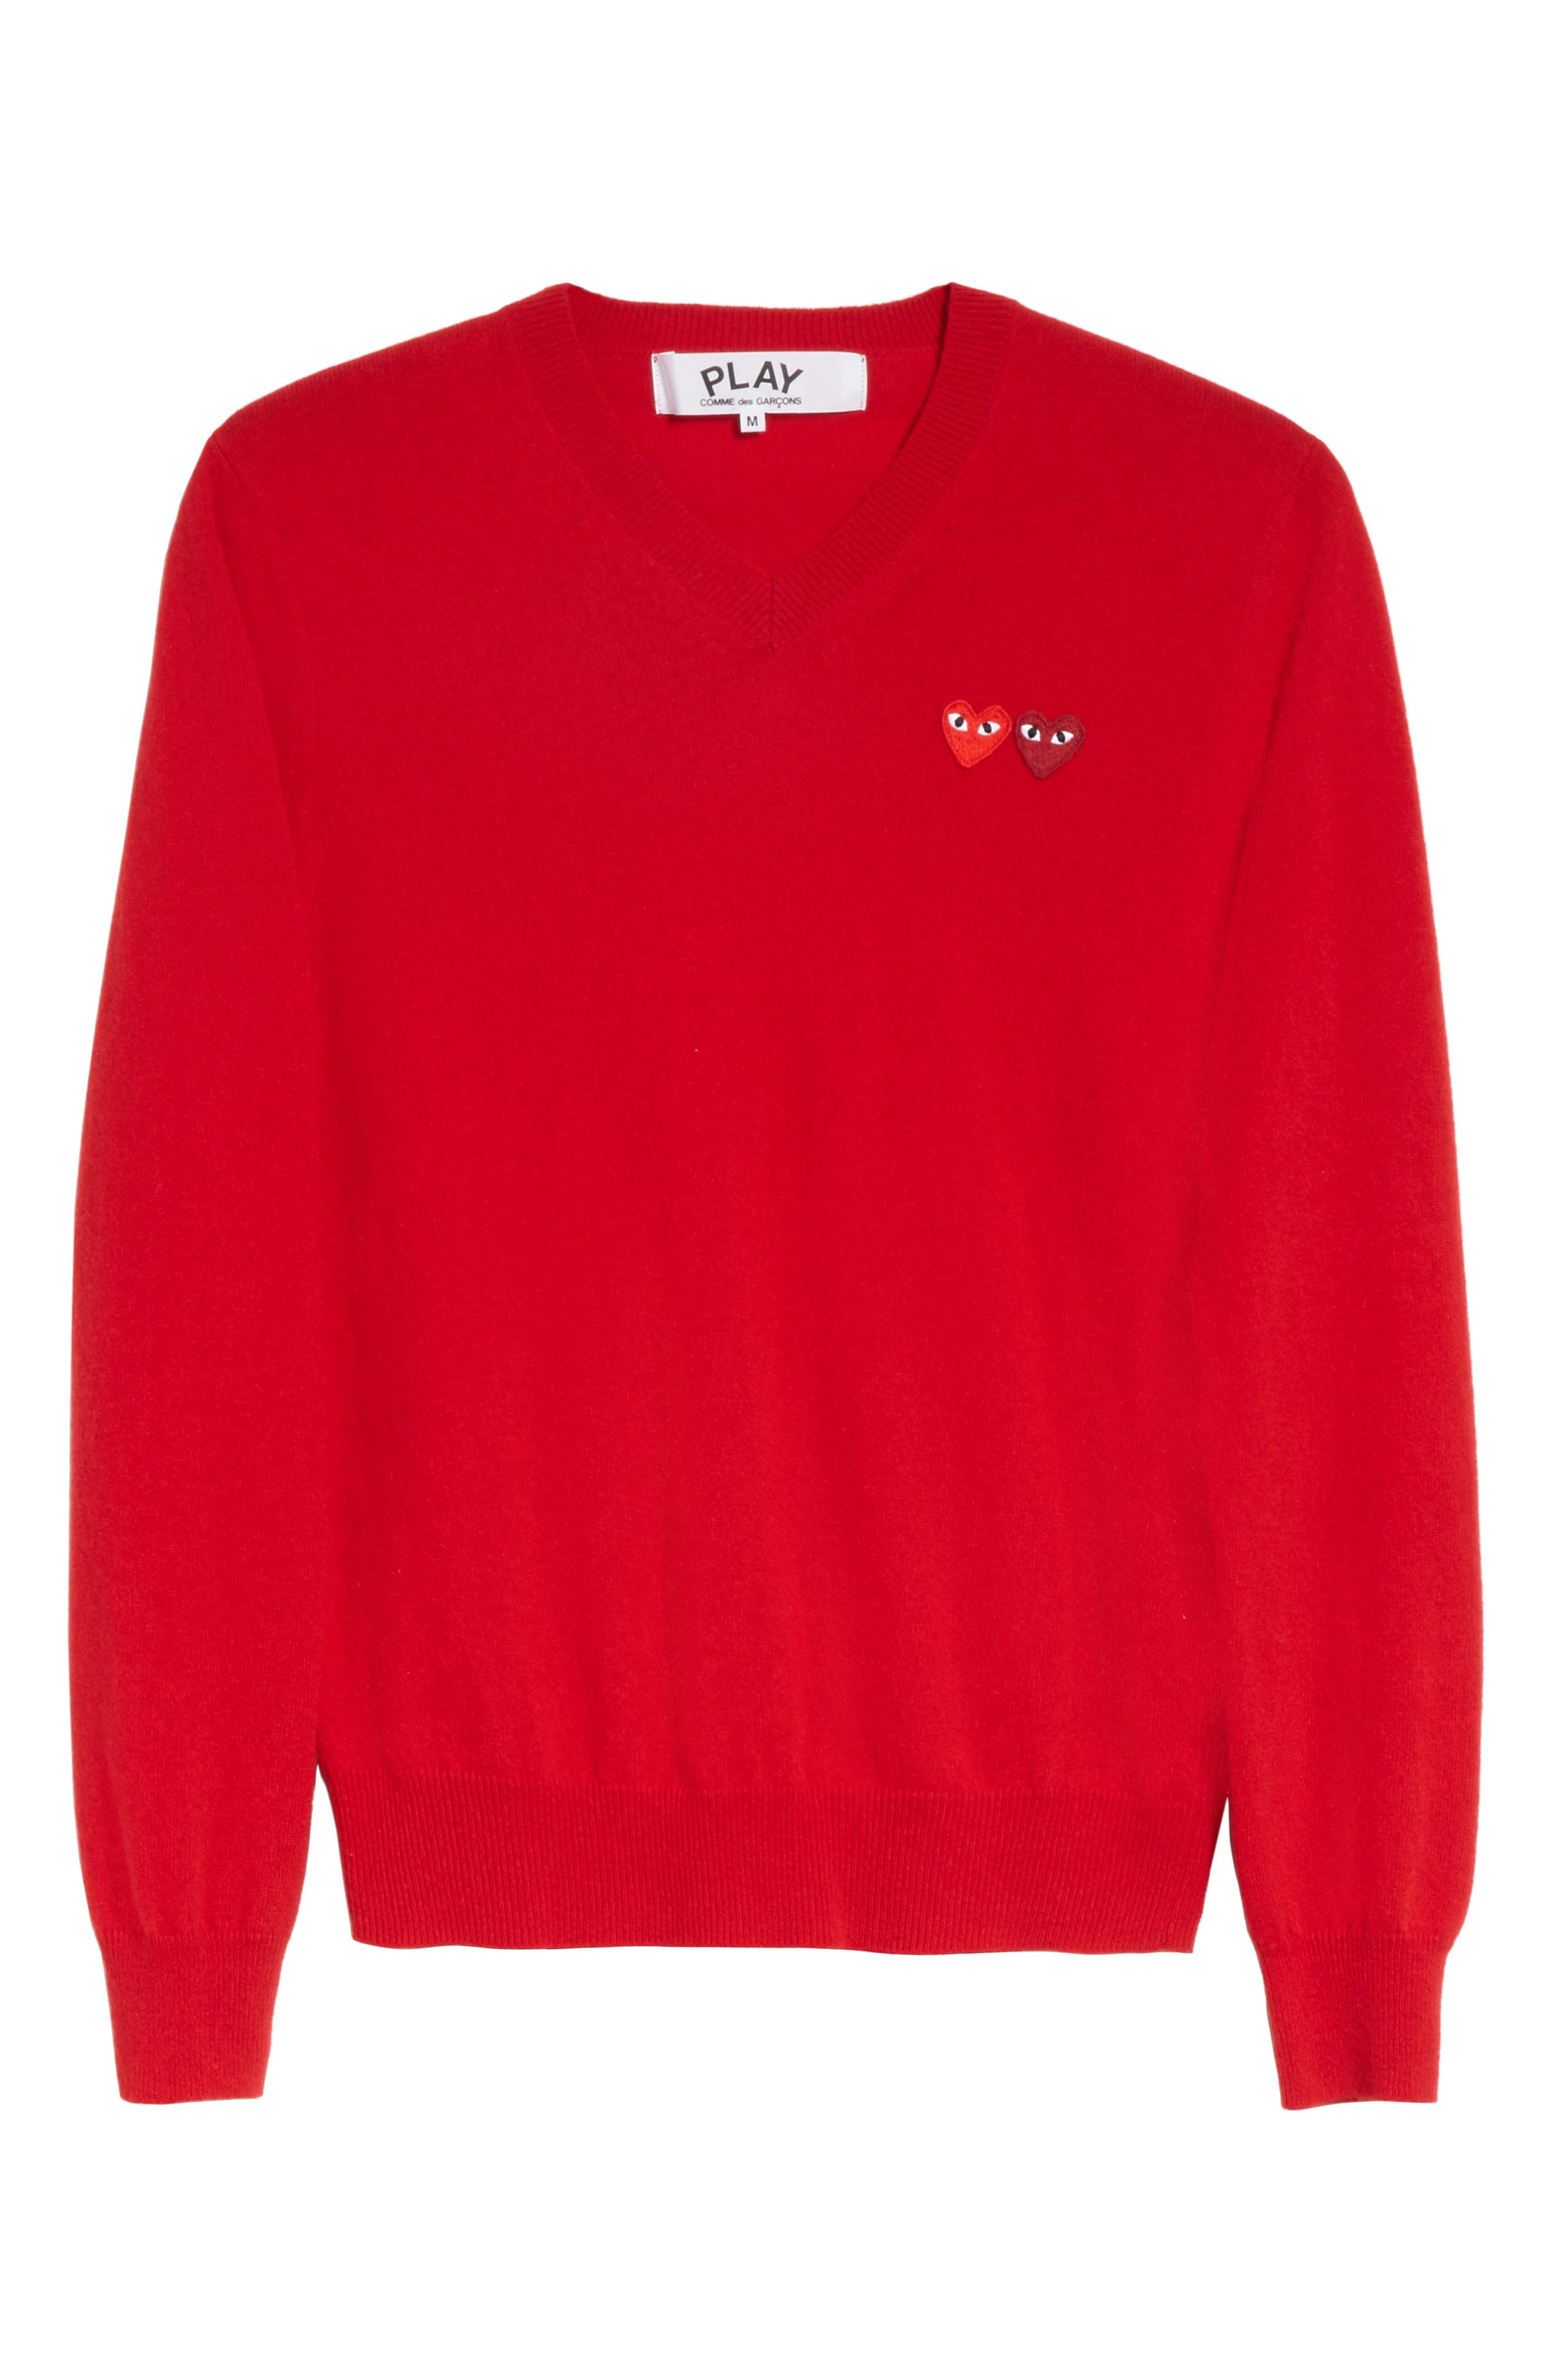 Comme des Garçons PLAY Wool Pullover,                             Alternate thumbnail 6, color,                             RED